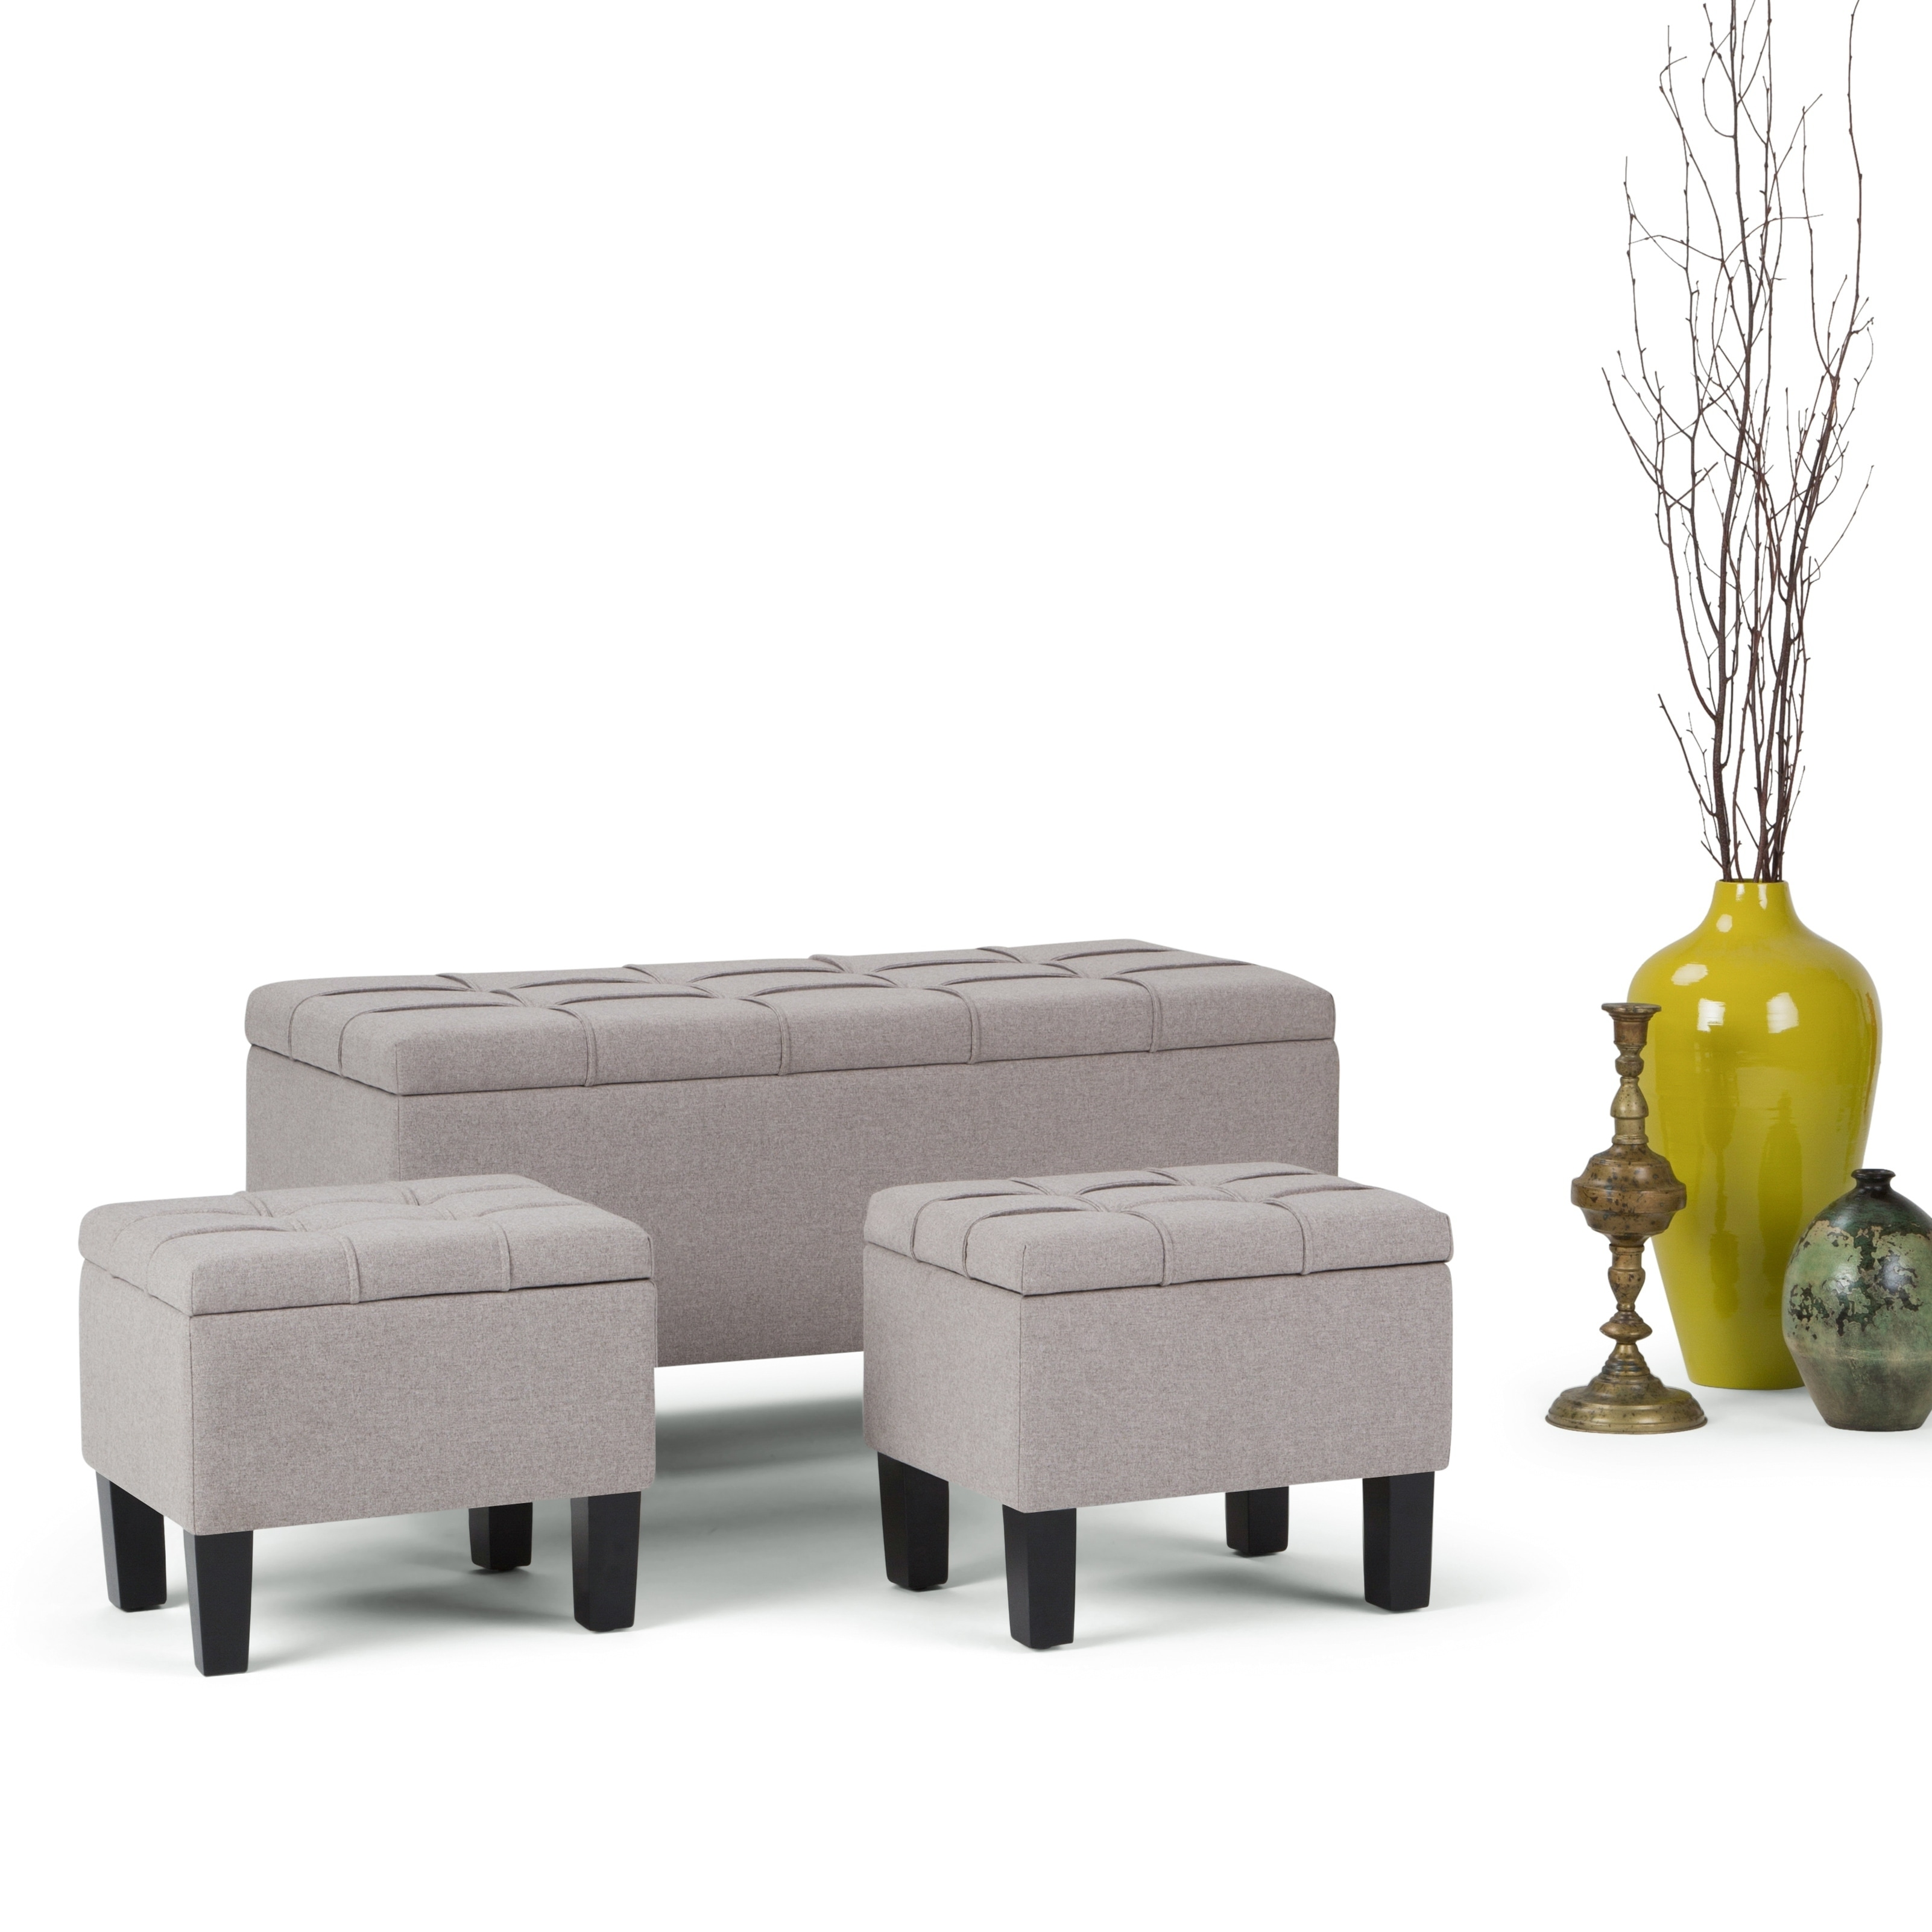 Wondrous Details About Wyndenhall Lancaster 44 Inch Wide Contemporary Storage Medium Camellatalisay Diy Chair Ideas Camellatalisaycom